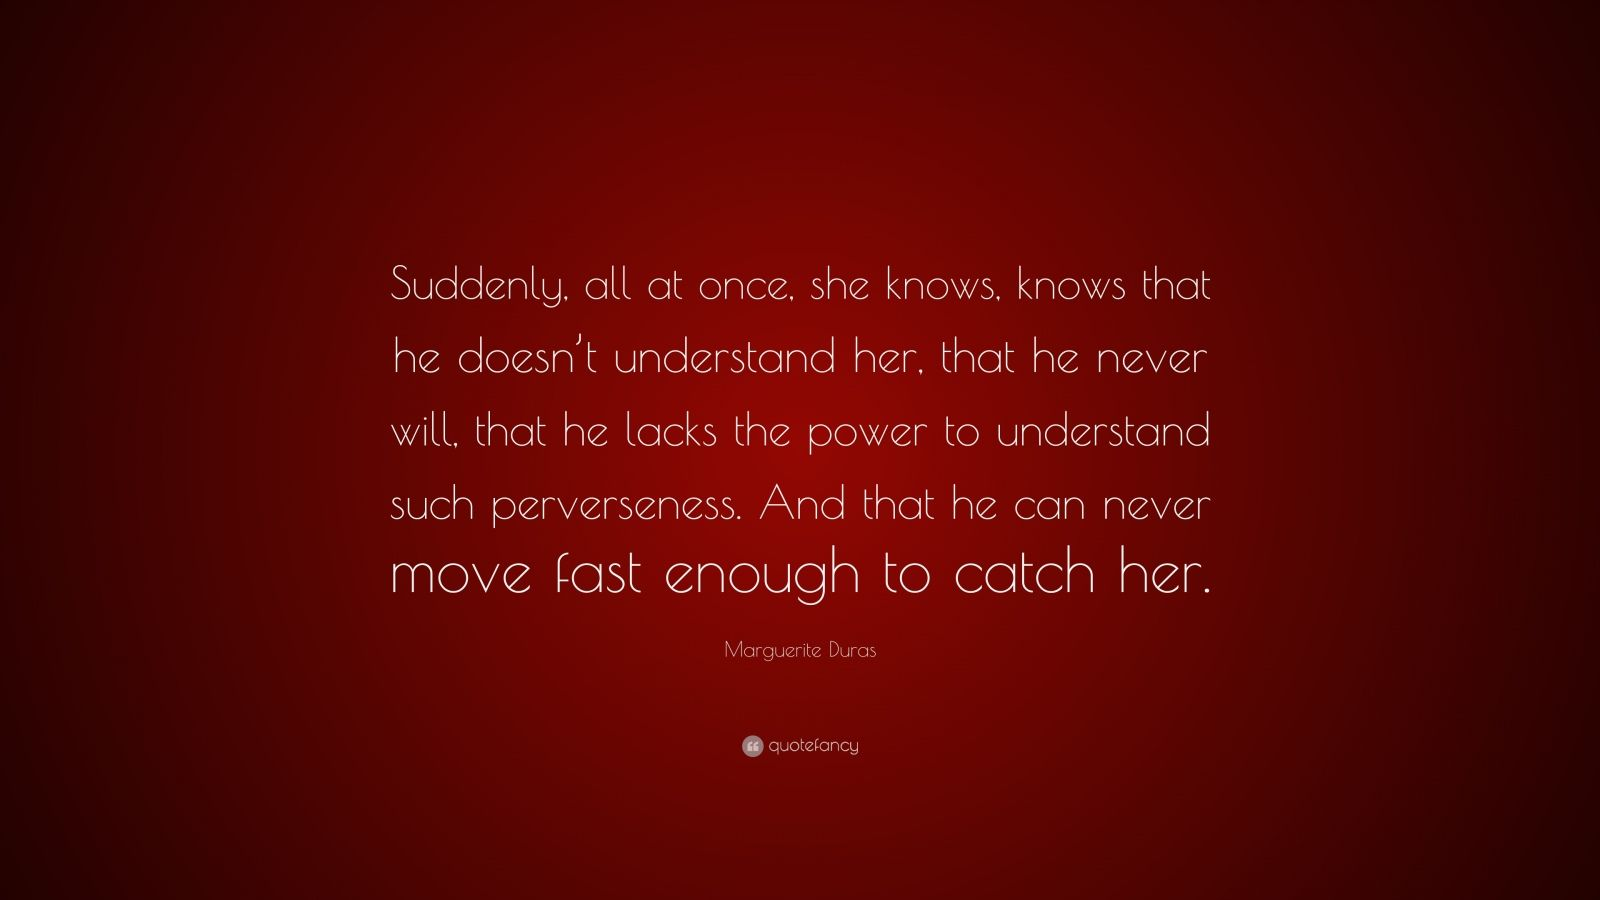 """Marguerite Duras Quote: """"Suddenly, all at once, she knows, knows that he doesn't understand her, that he never will, that he lacks the power to understand such perverseness. And that he can never move fast enough to catch her."""""""